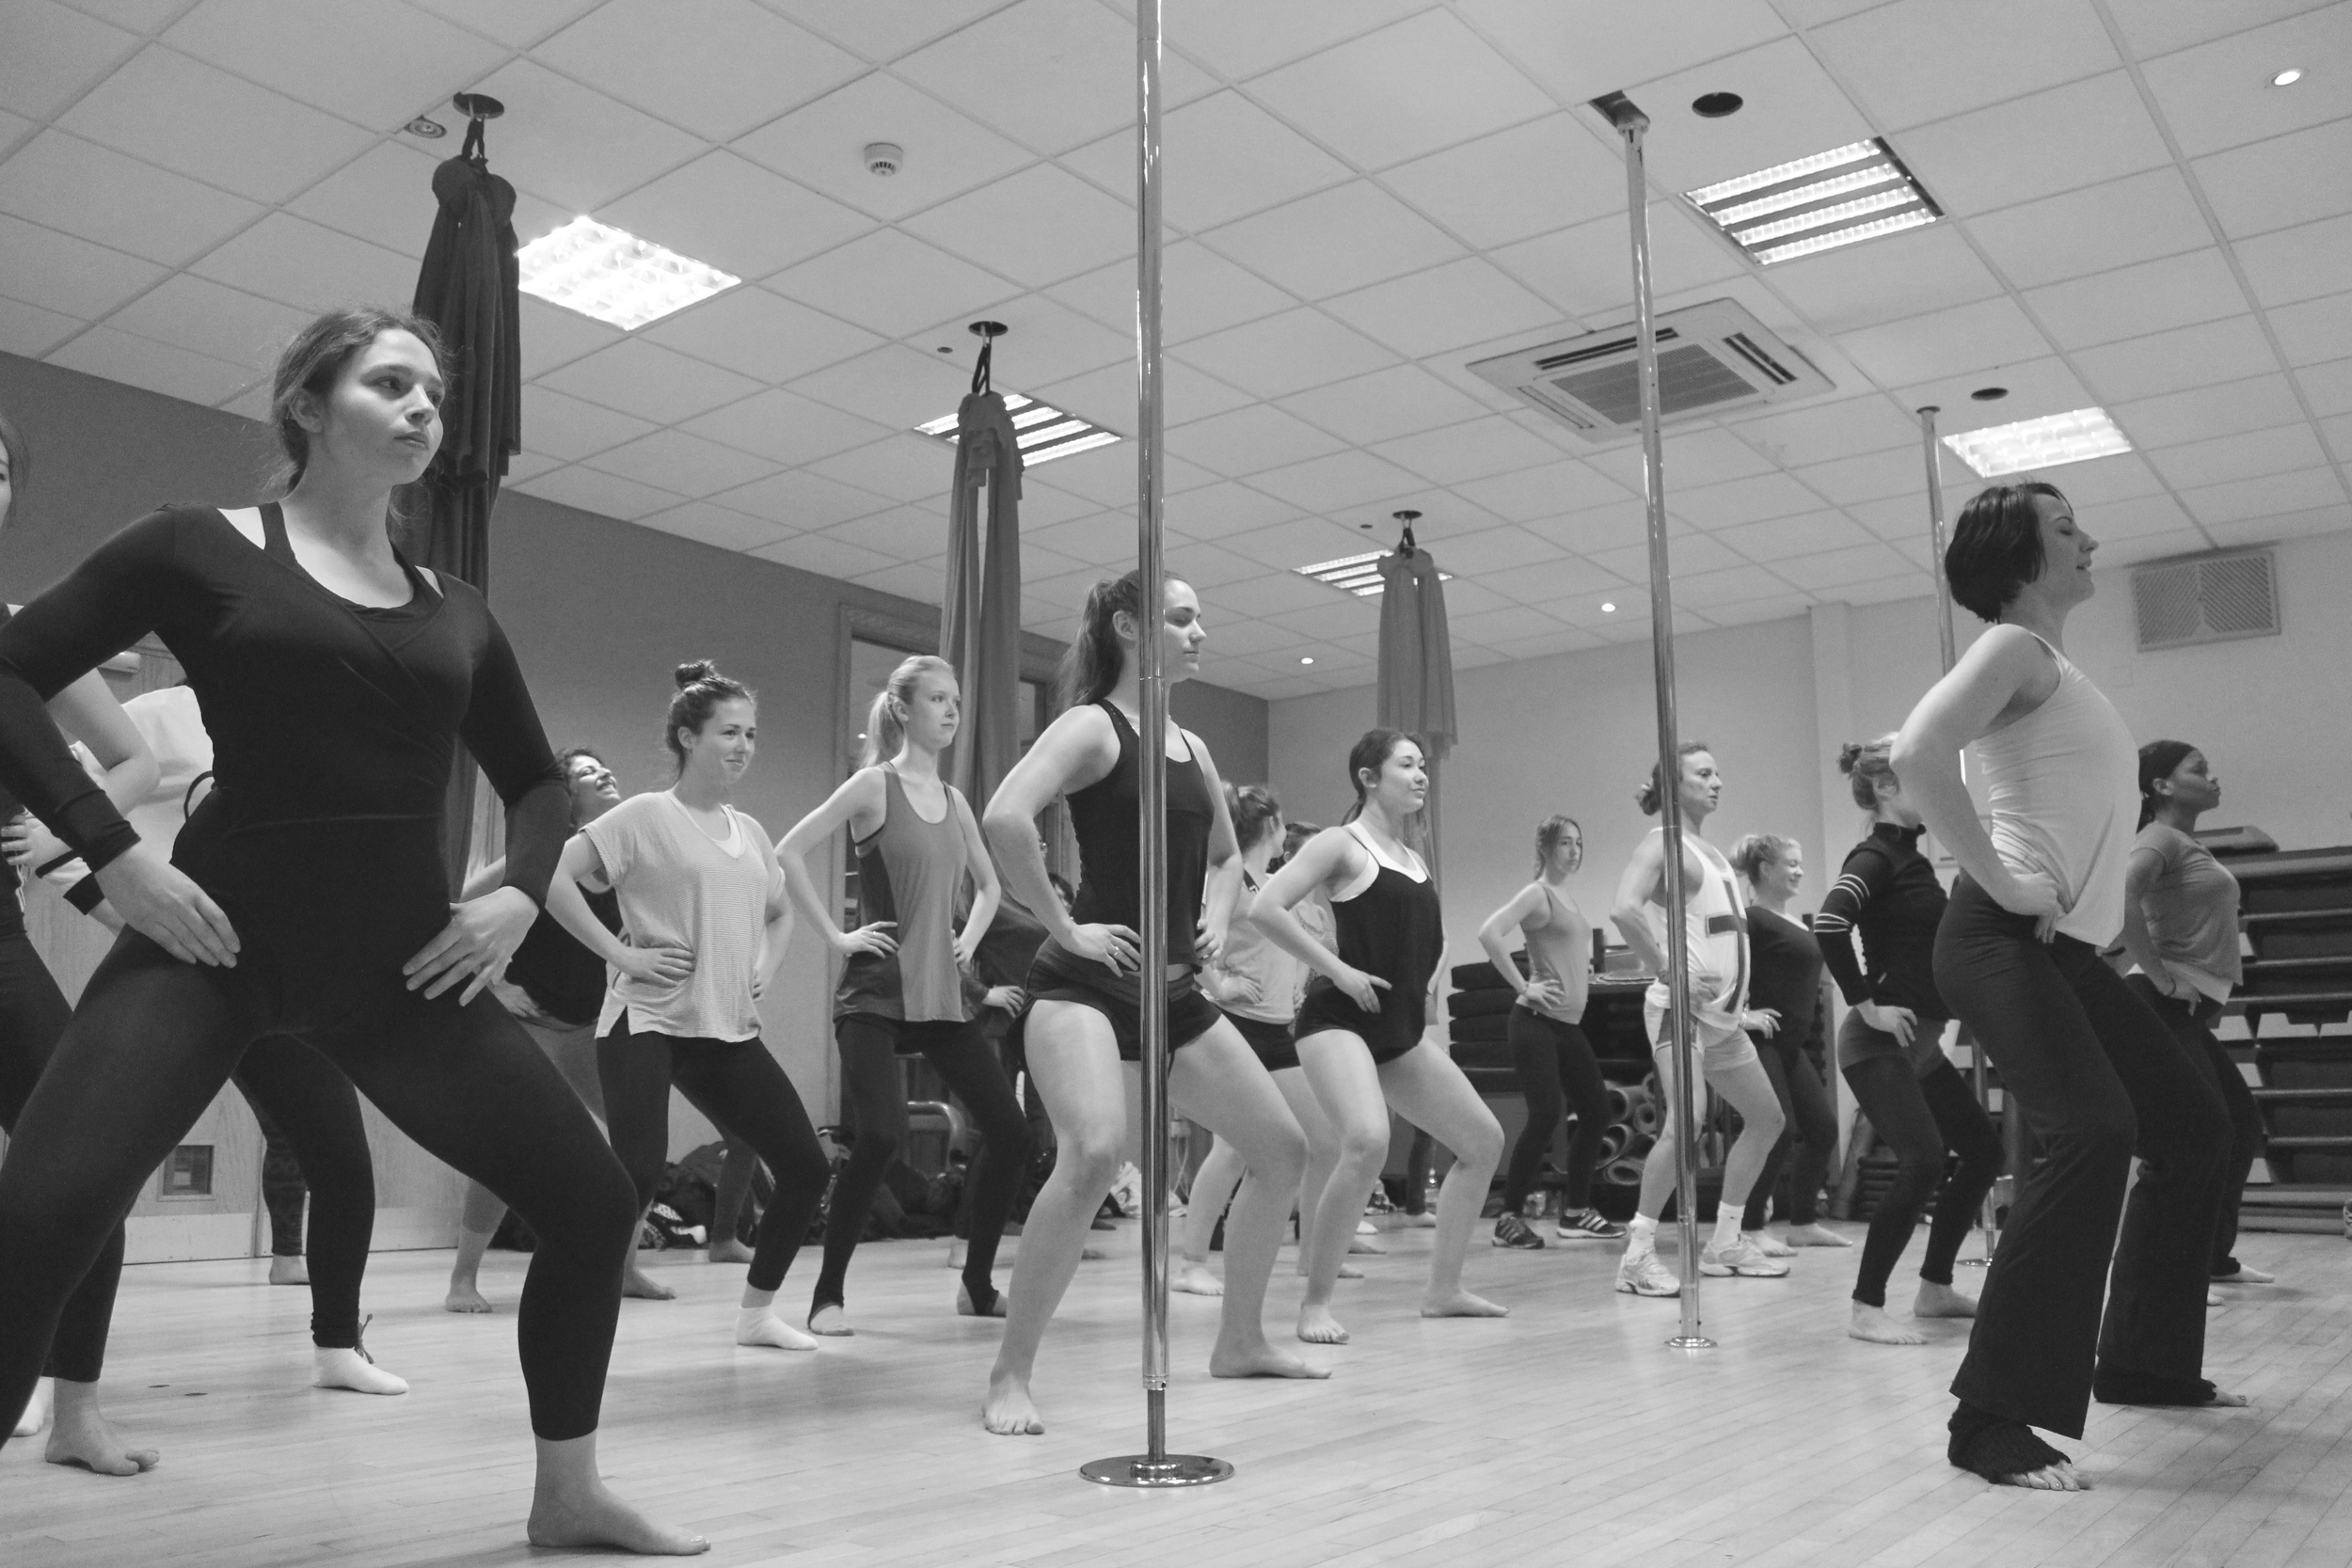 pole dance classes in south east london